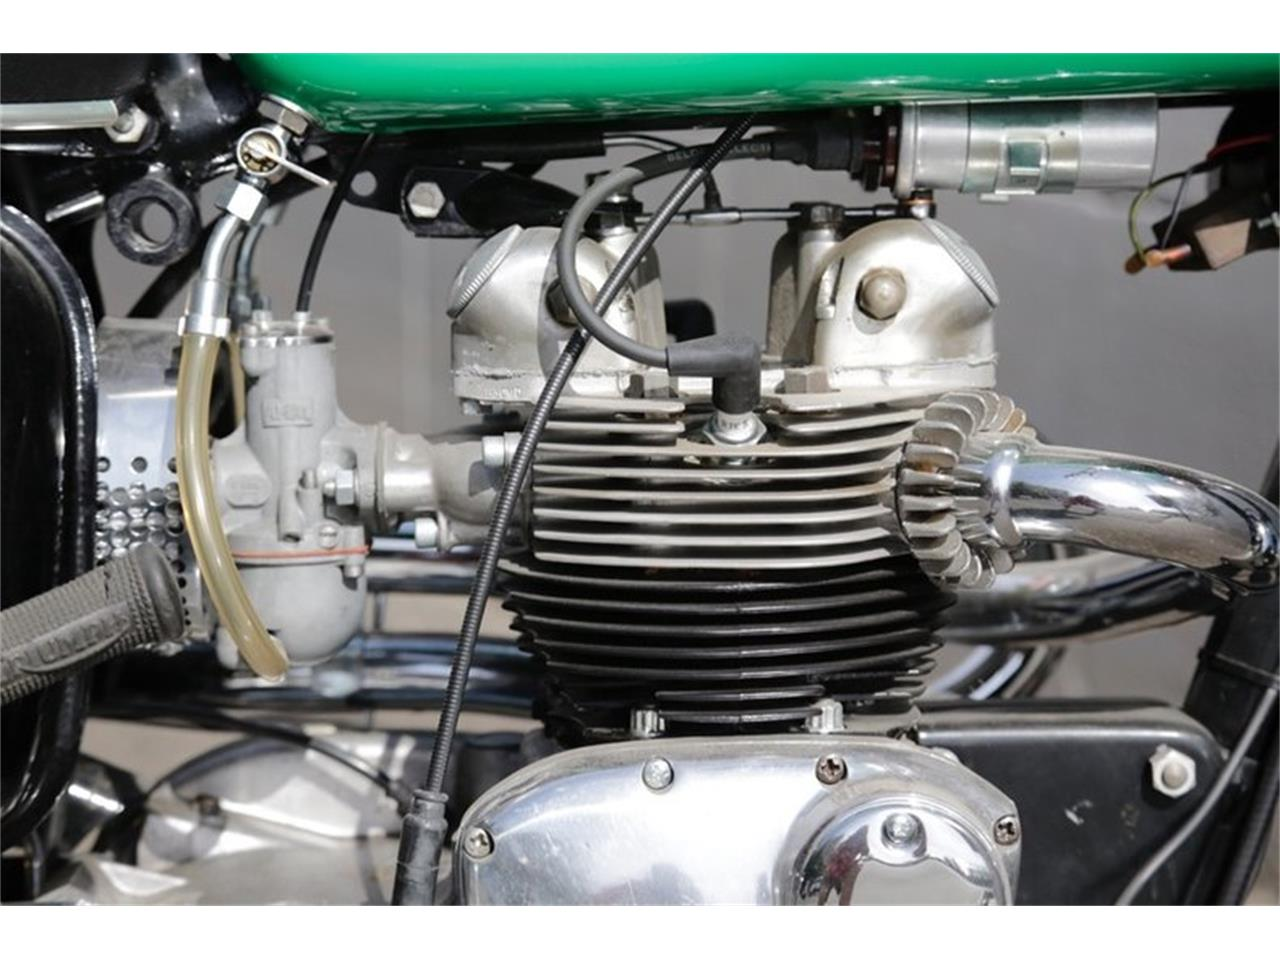 Large Picture of Classic '69 Triumph Motorcycle located in Washington - $15,000.00 - NPR4